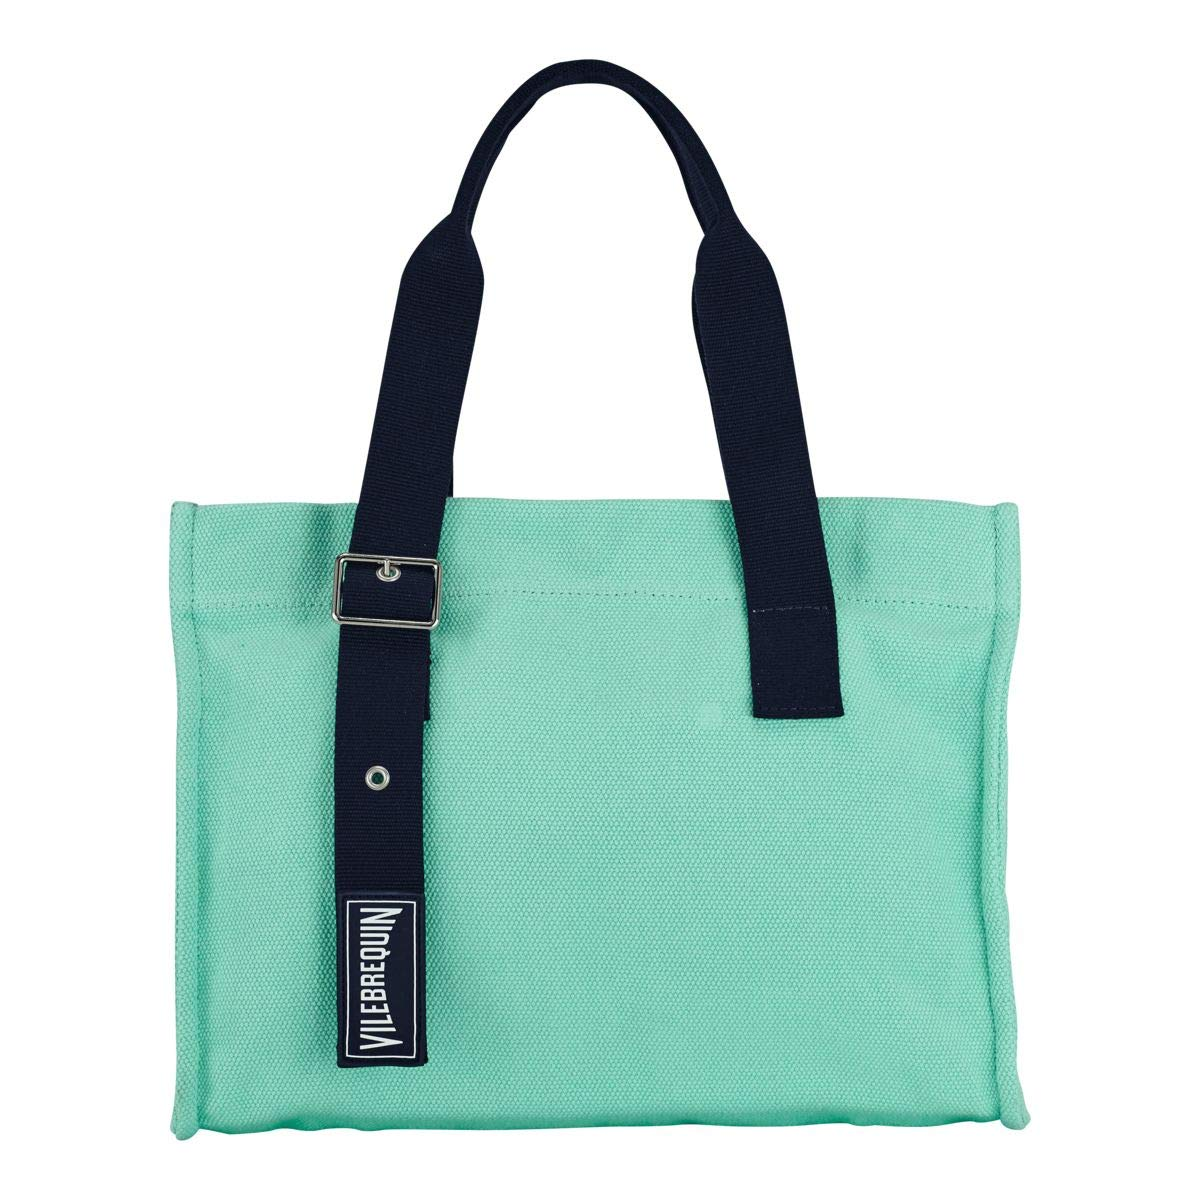 Vilebrequin - Small Cotton Beach Bag Solid - Mint - OSFA by Vilebrequin